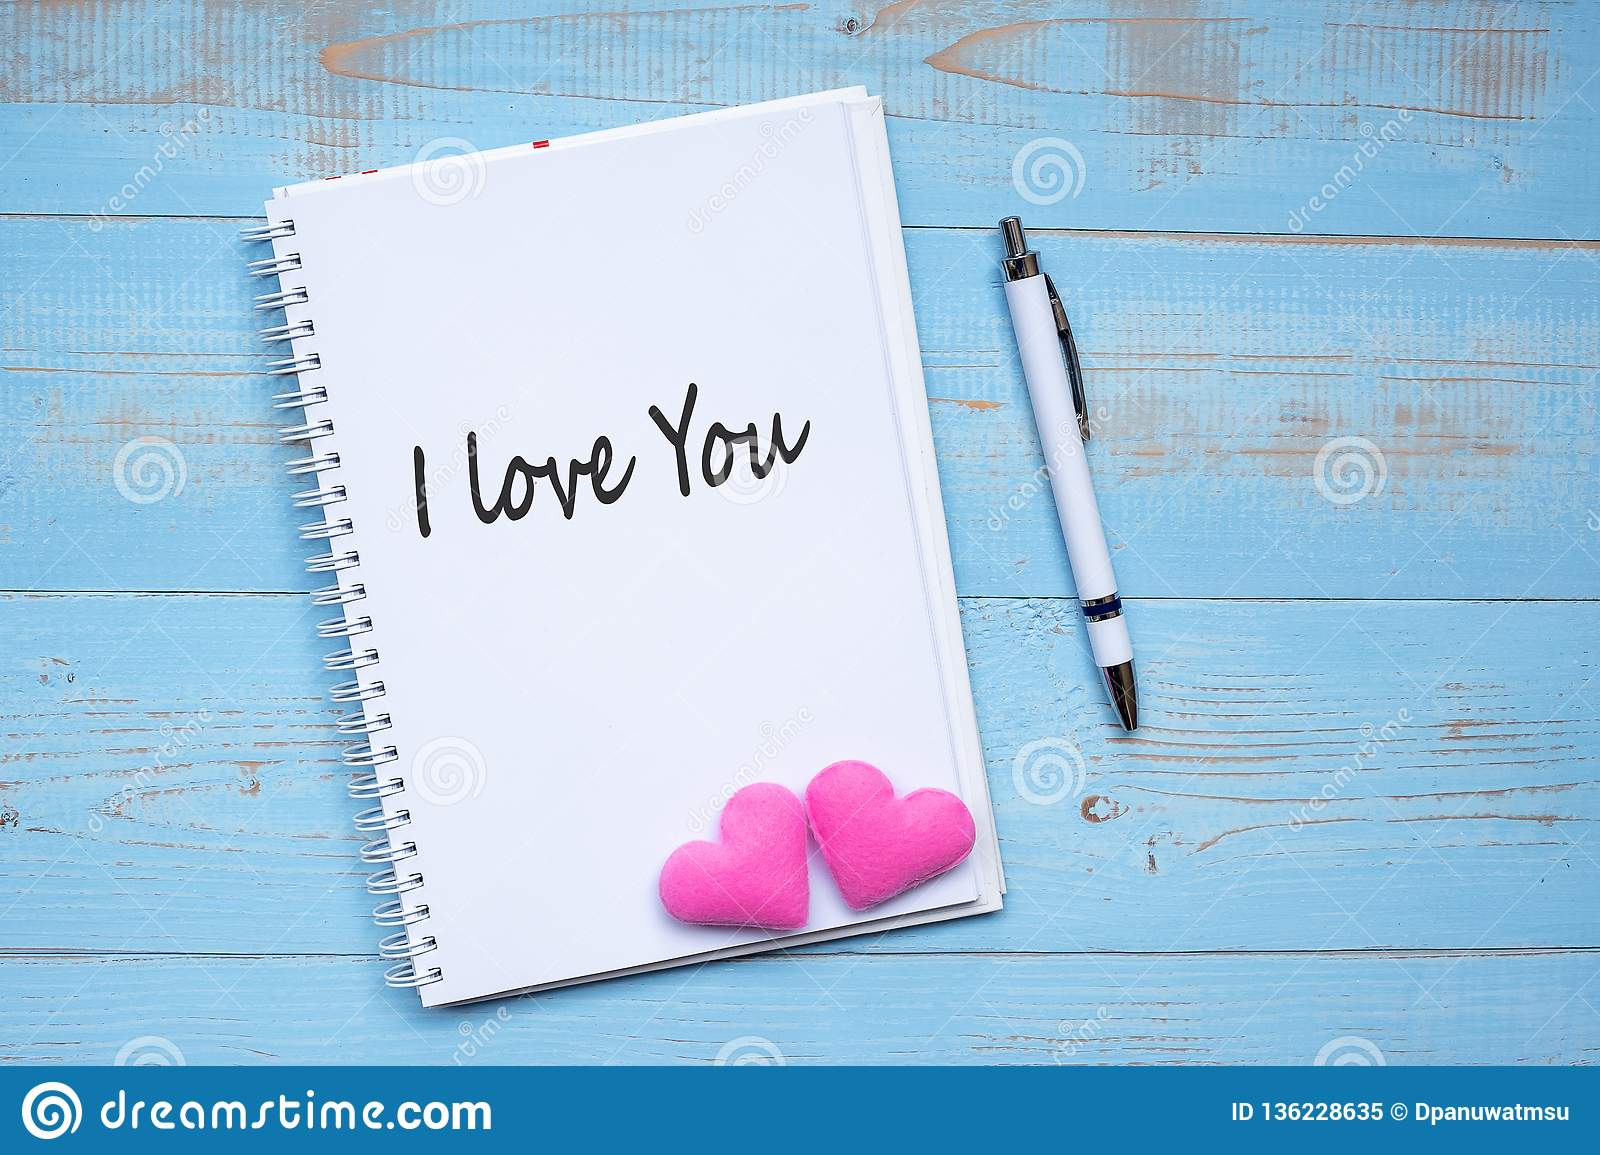 I LOVE YOU word on notebook and pen with couple pink heart shape decoration on blue wooden table background. Wedding, Romantic and